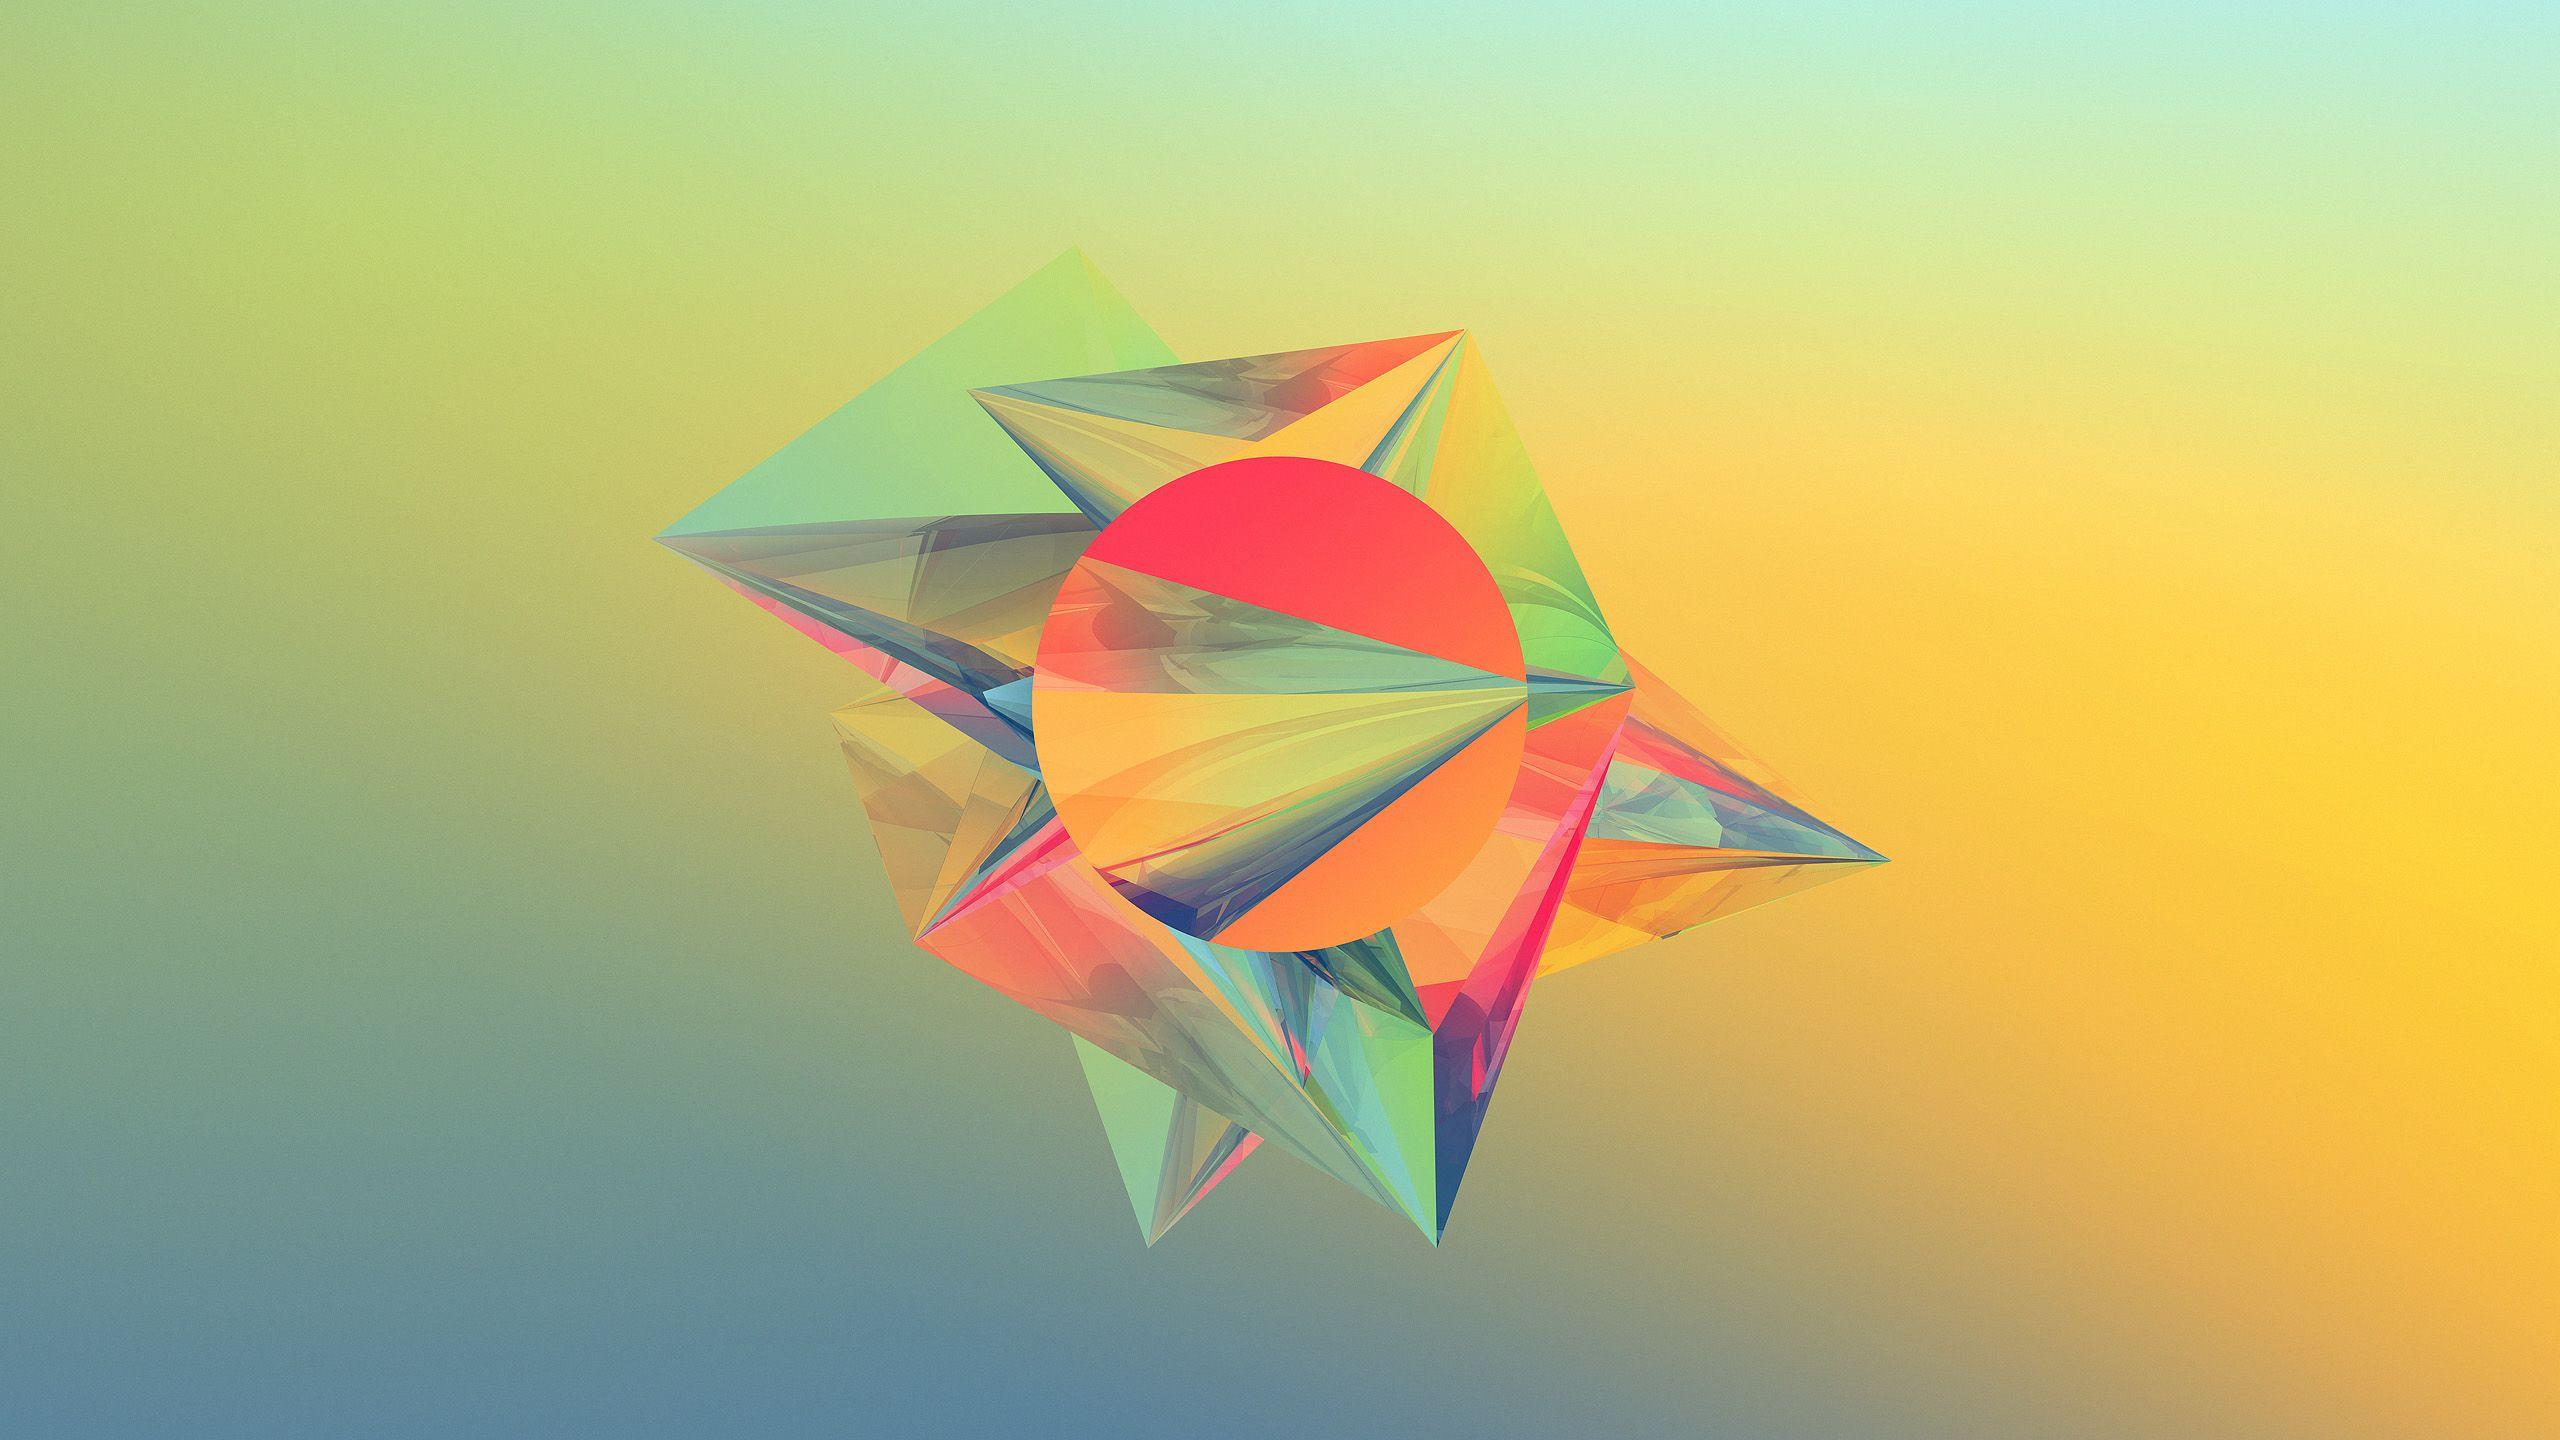 Geometric Abstract Shapes Wallpaper | 2560x1440 | ID:33824